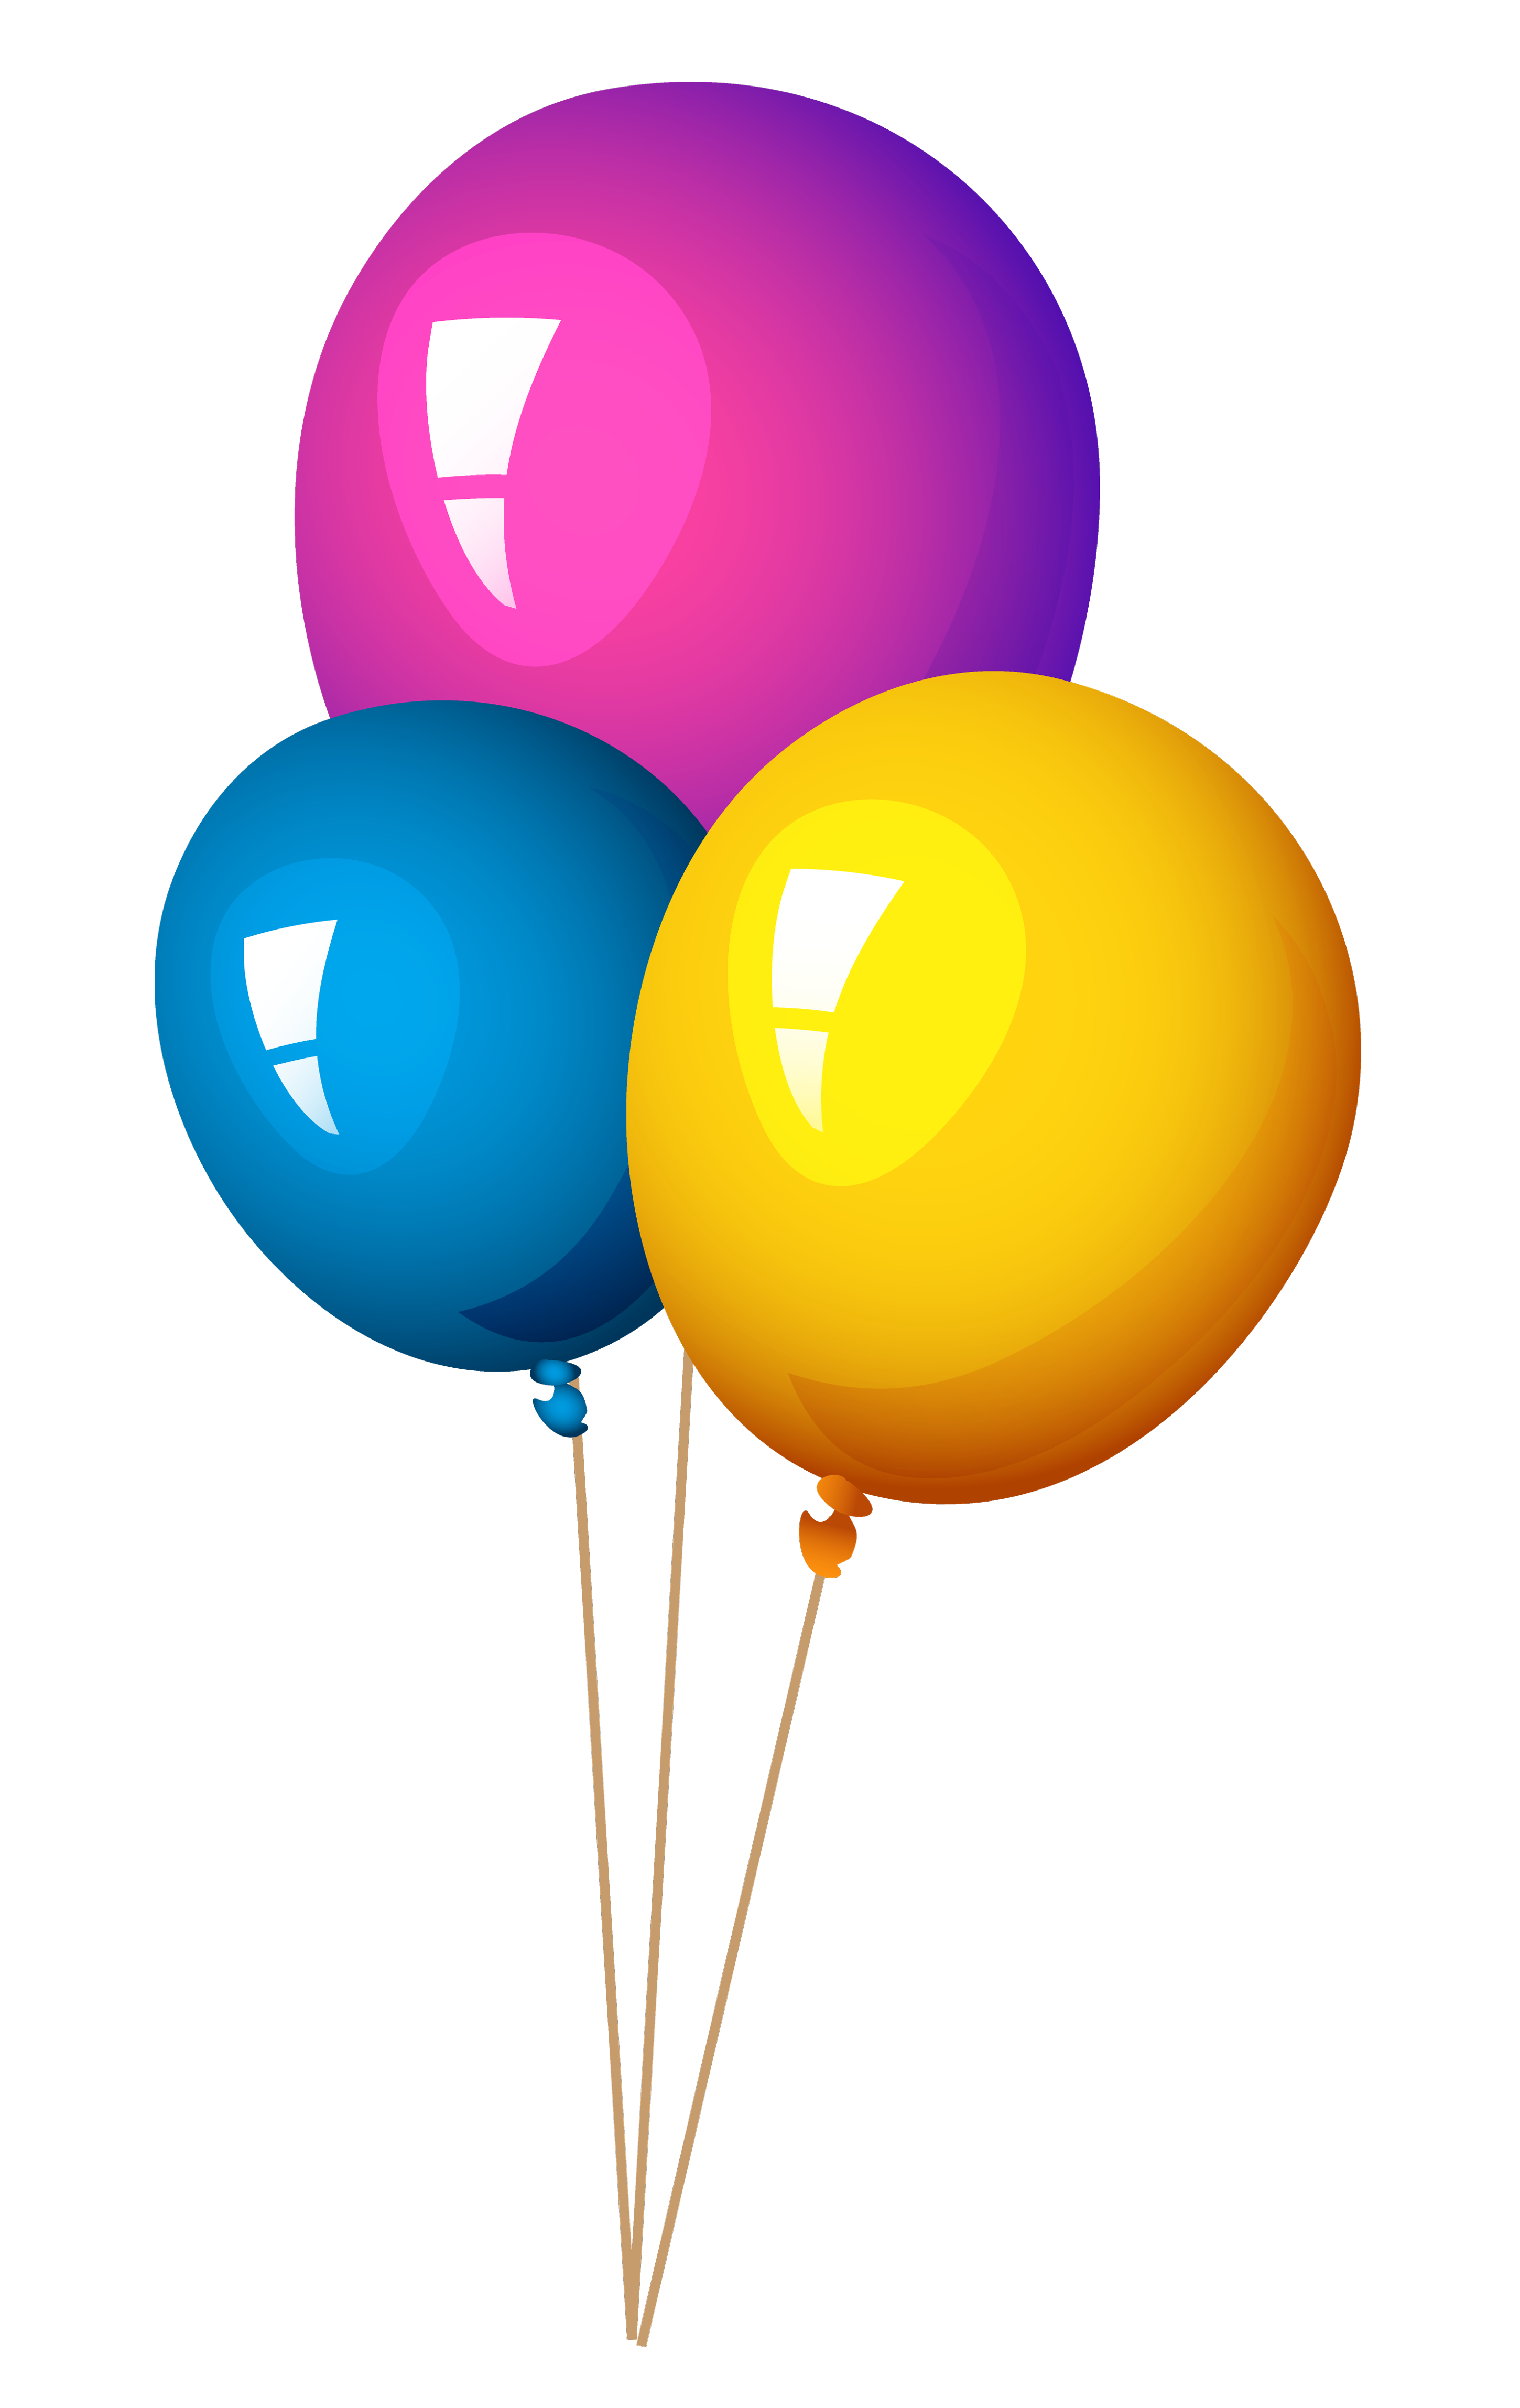 Clipart balloon clear background. Free png transparent images